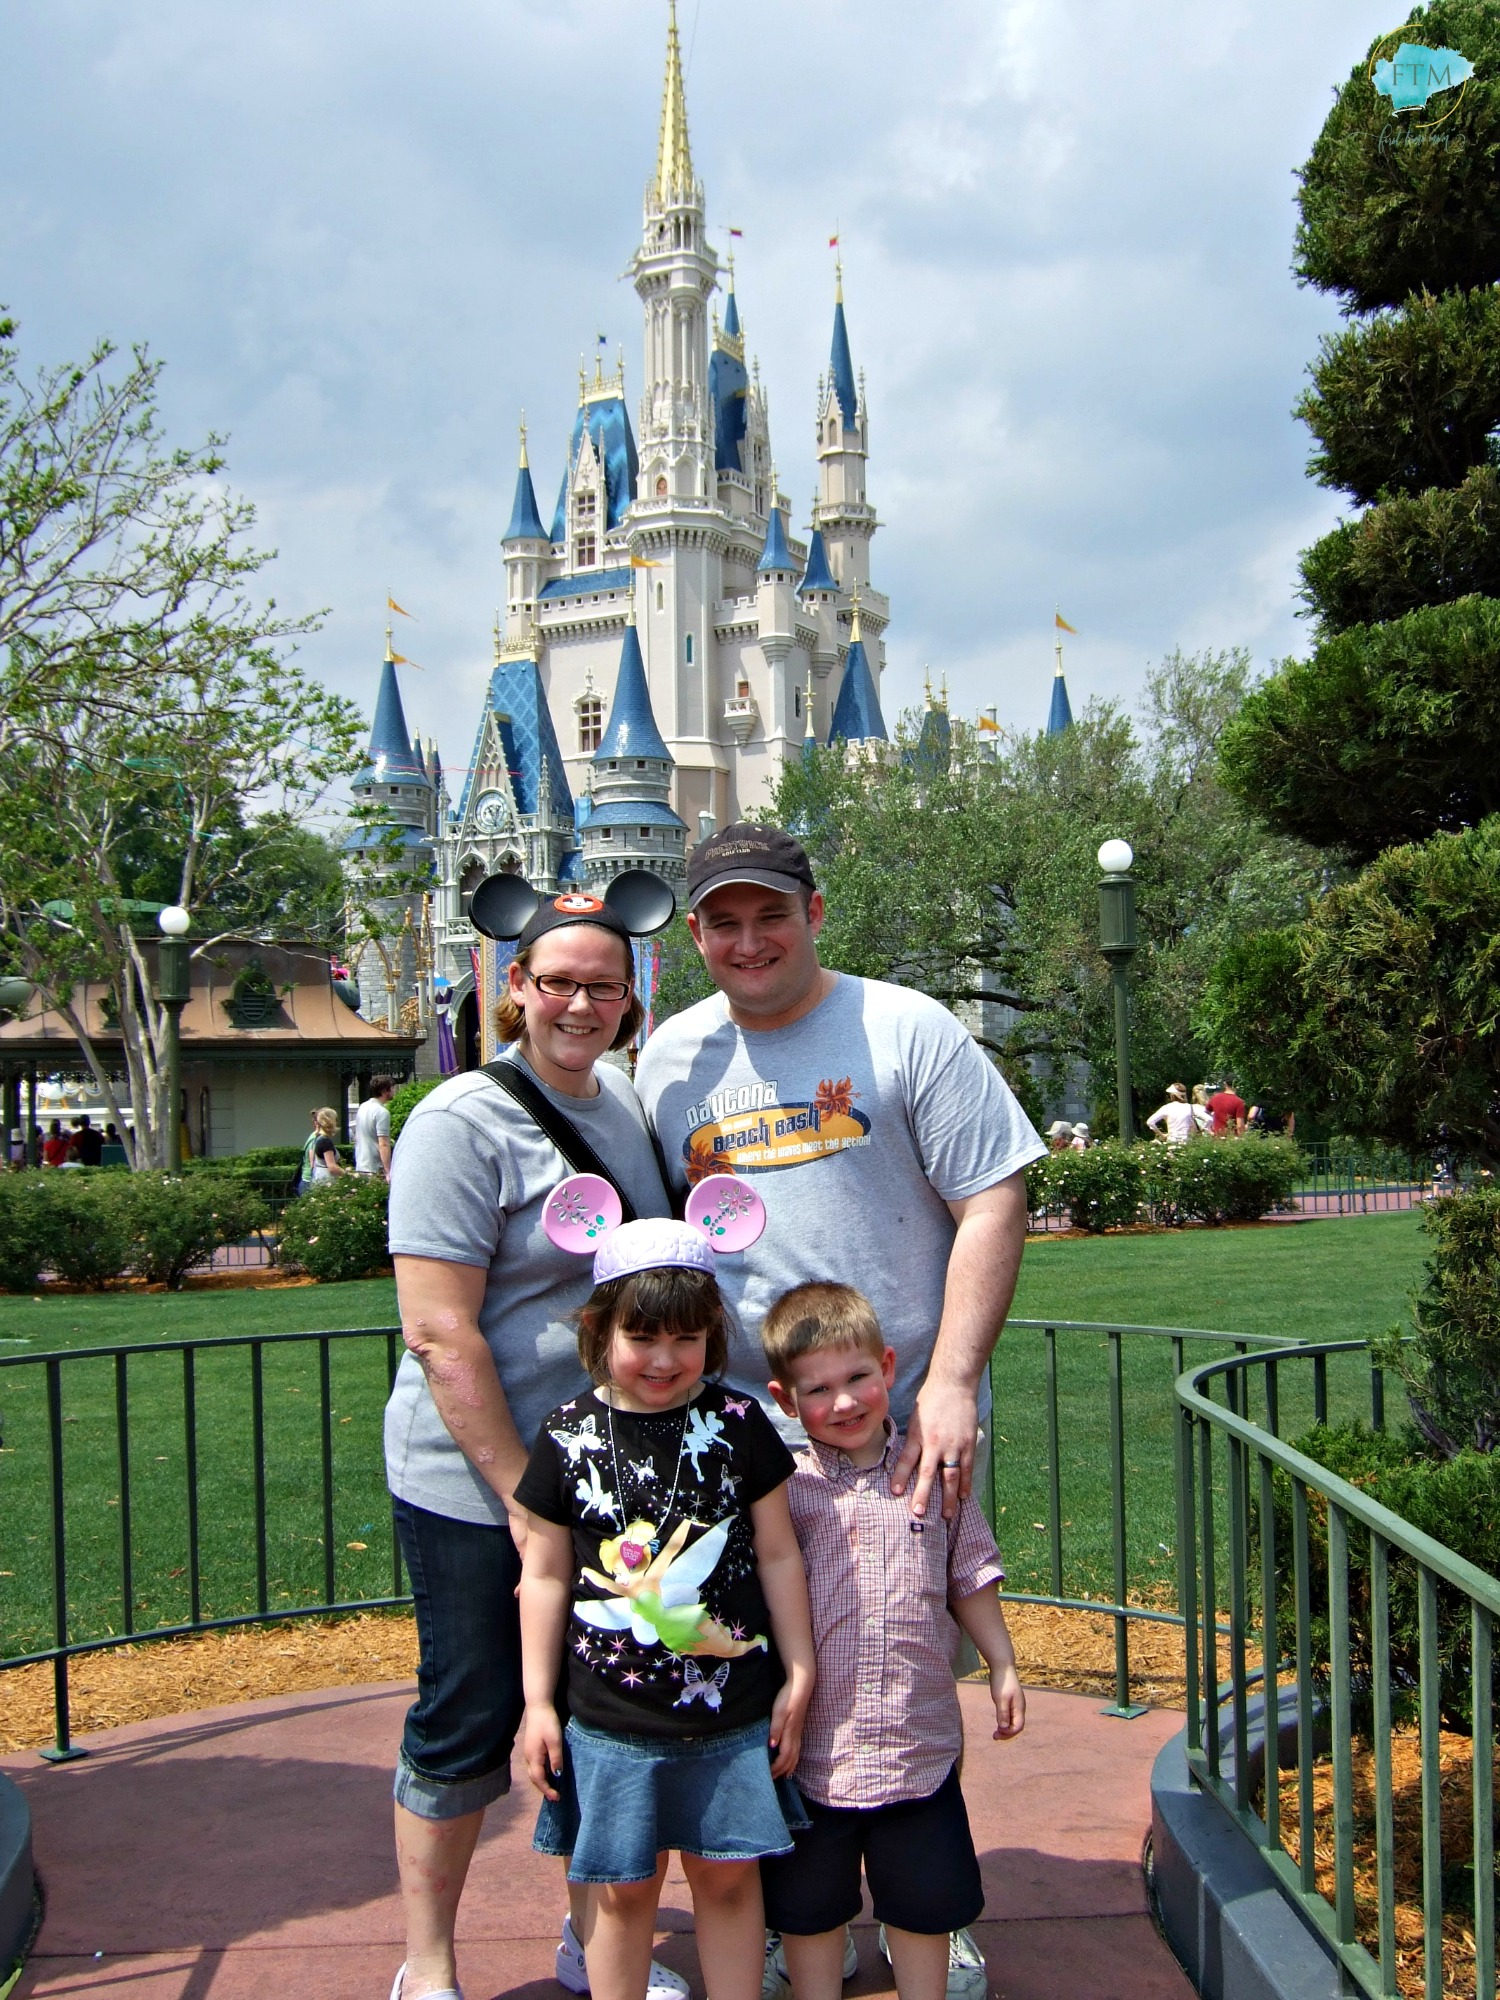 Traveling to Walt Disney World with a family